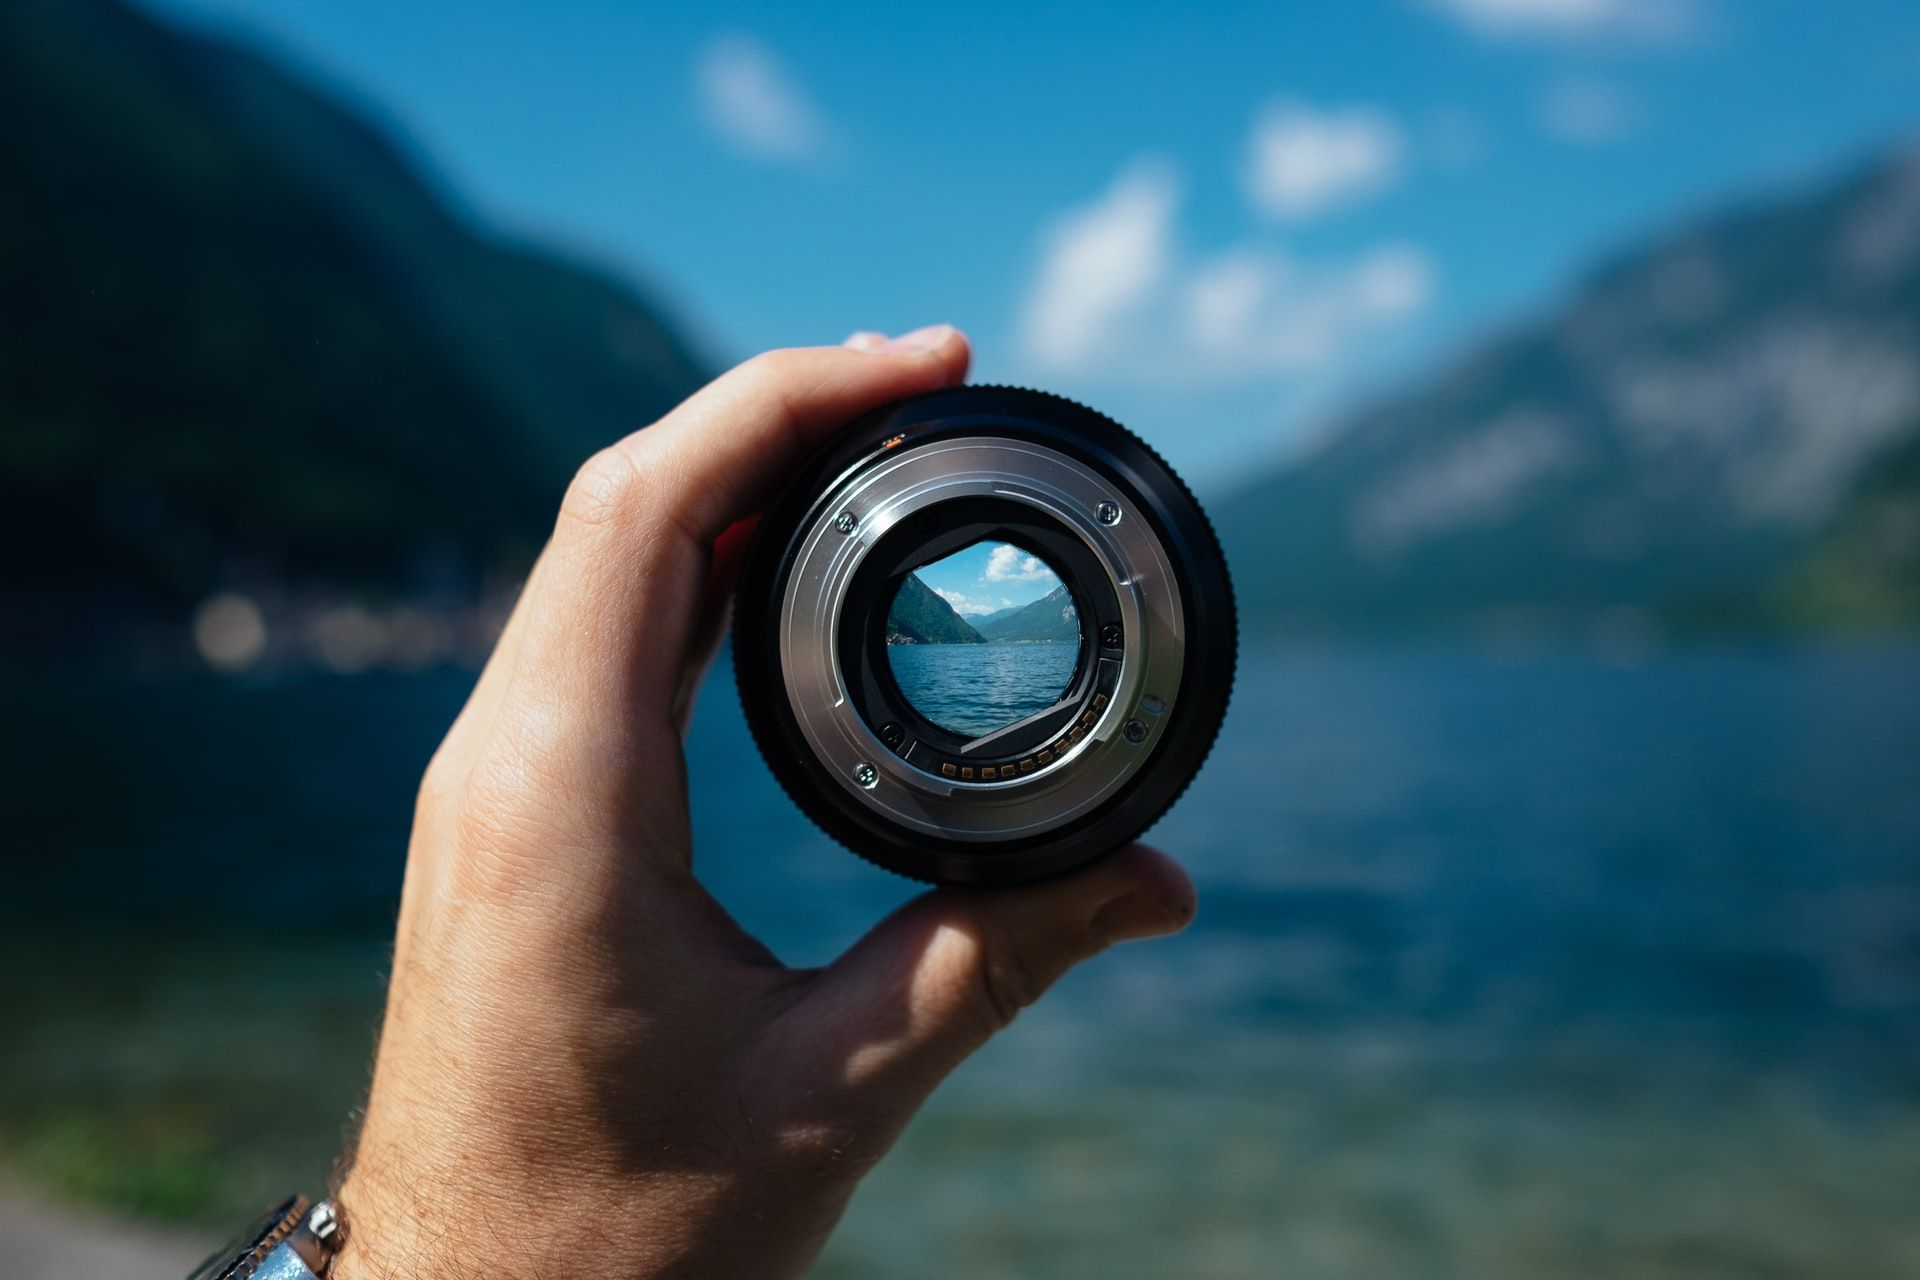 Looking at a view of a lake through a camera lens